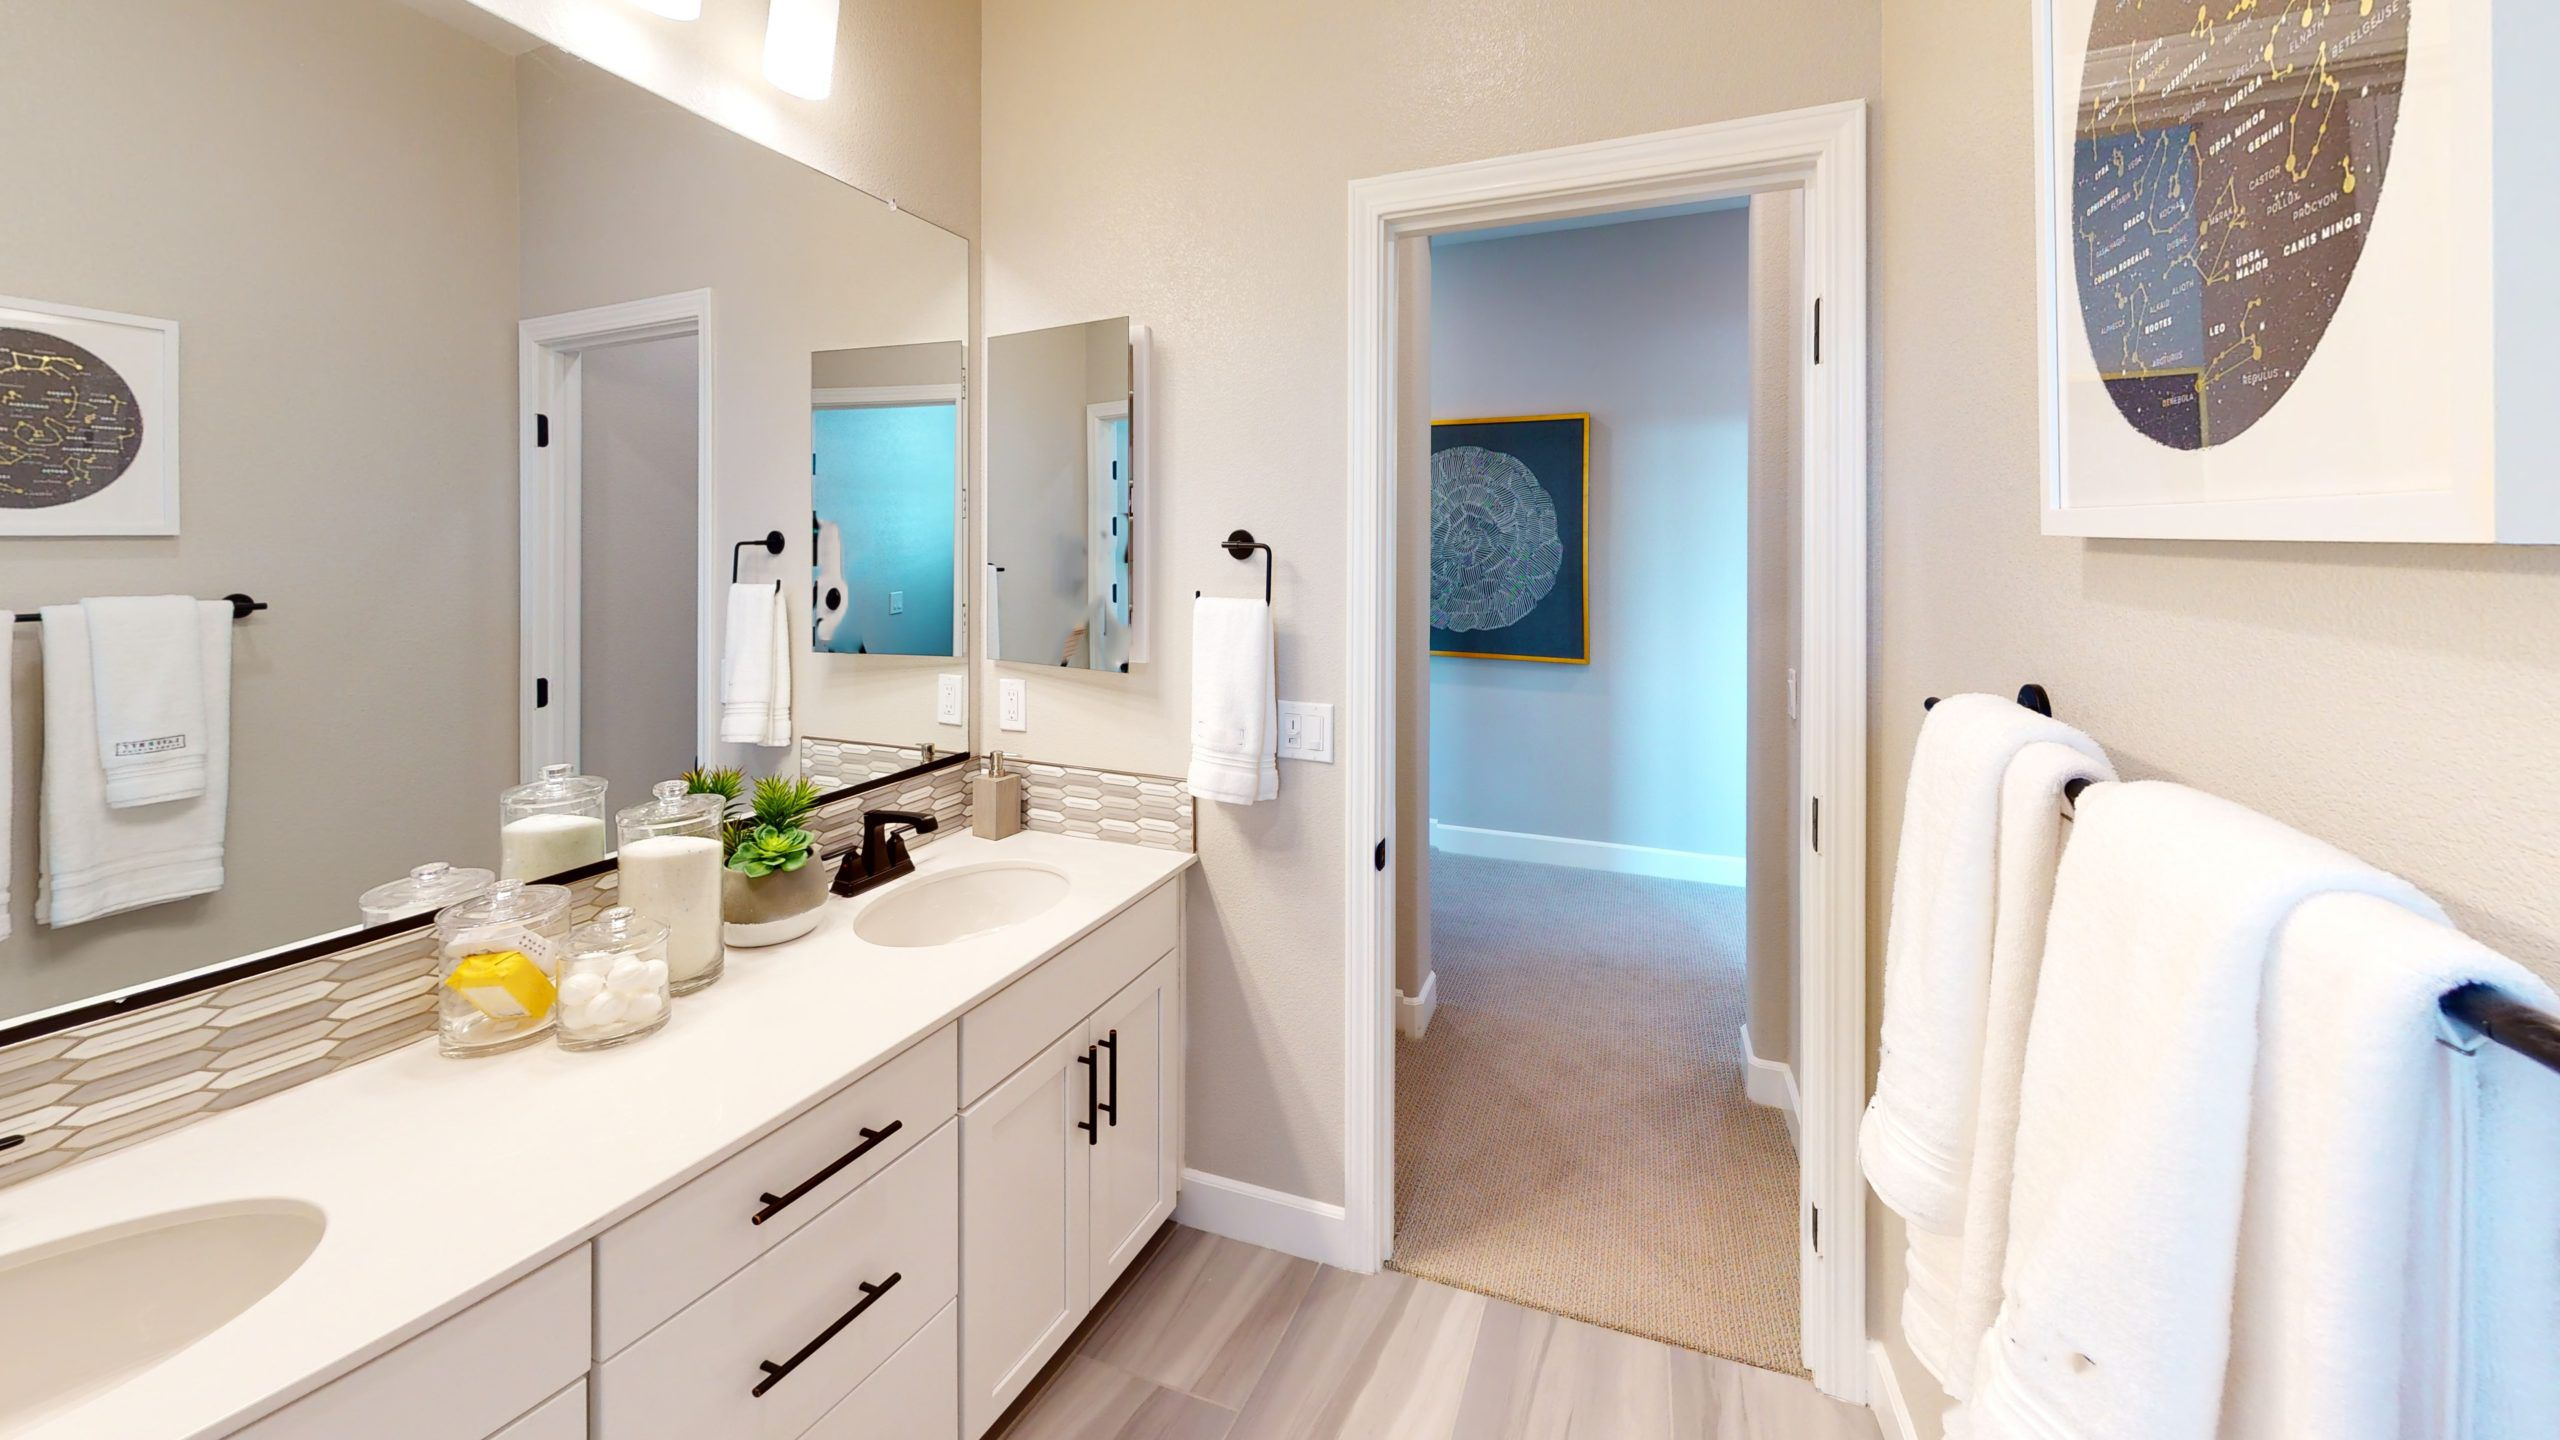 Bathroom featured in the Residence 4 By Next New Homes Group in Sacramento, CA